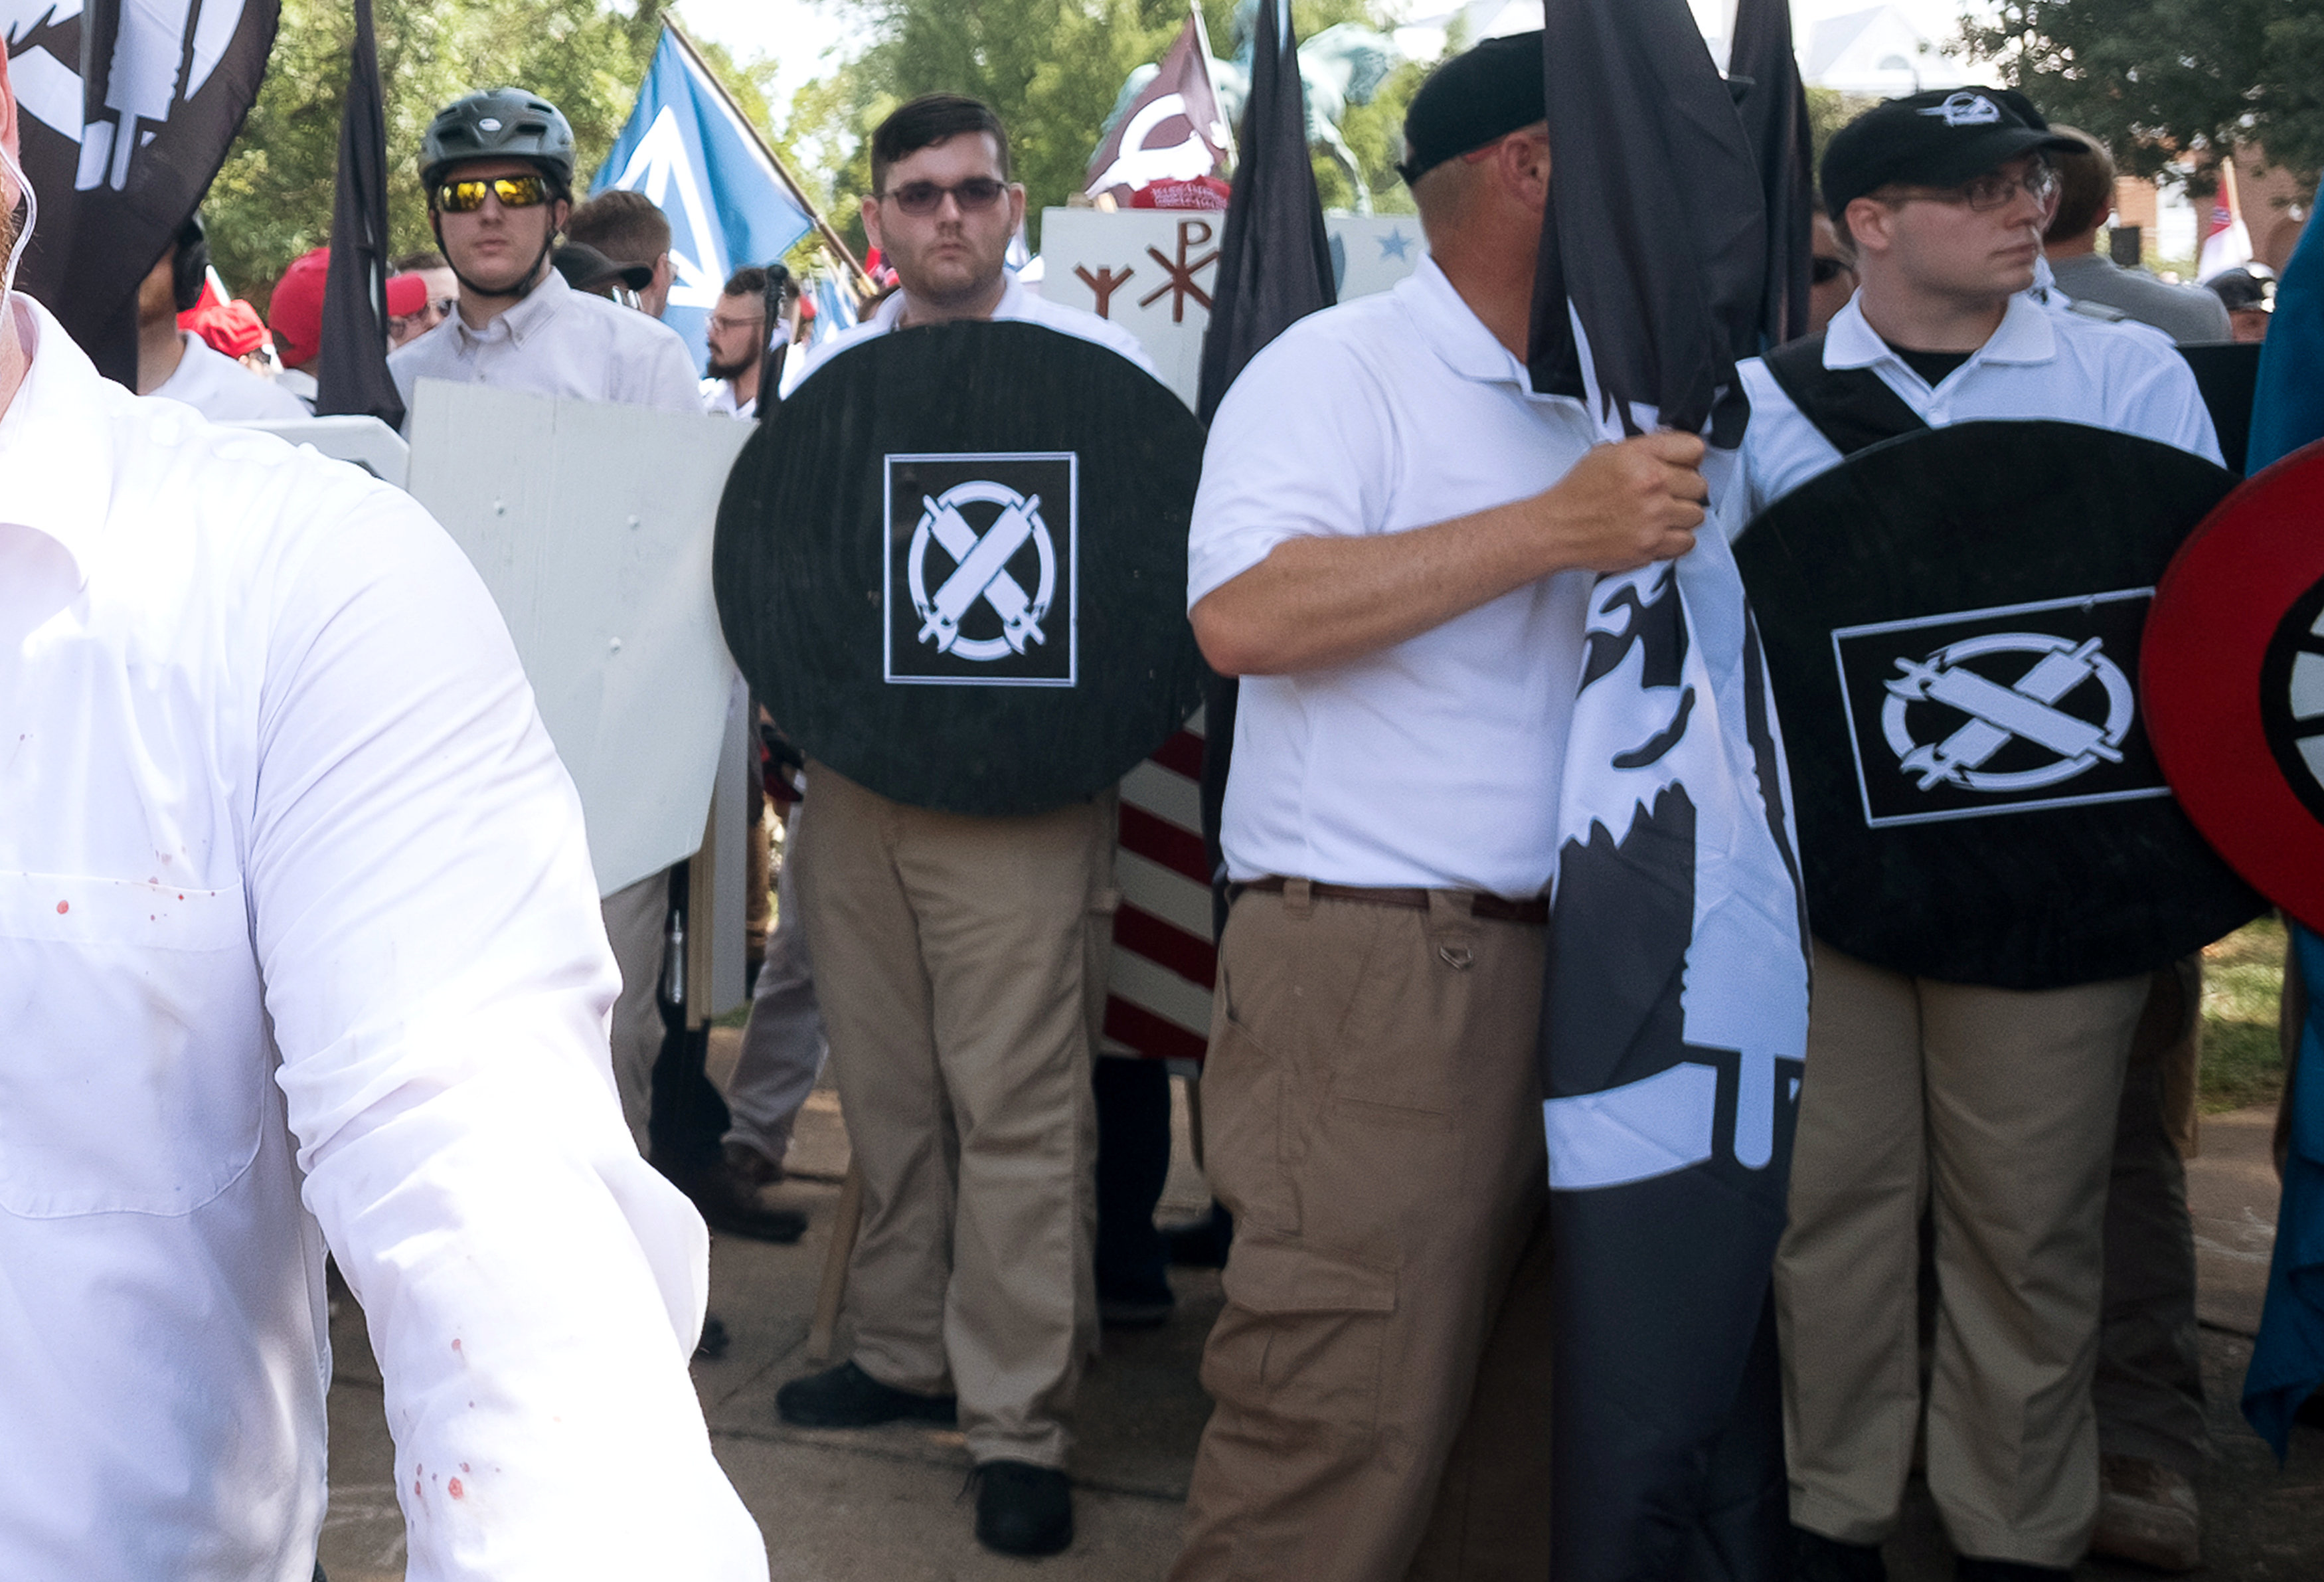 """James Alex Fields Jr., (2nd L with shield) is seen attending the """"Unite the Right"""" rally in Emancipation Park in Charlottesville, Virginia, on August 12, 2017. (REUTERS/Eze Amos)"""